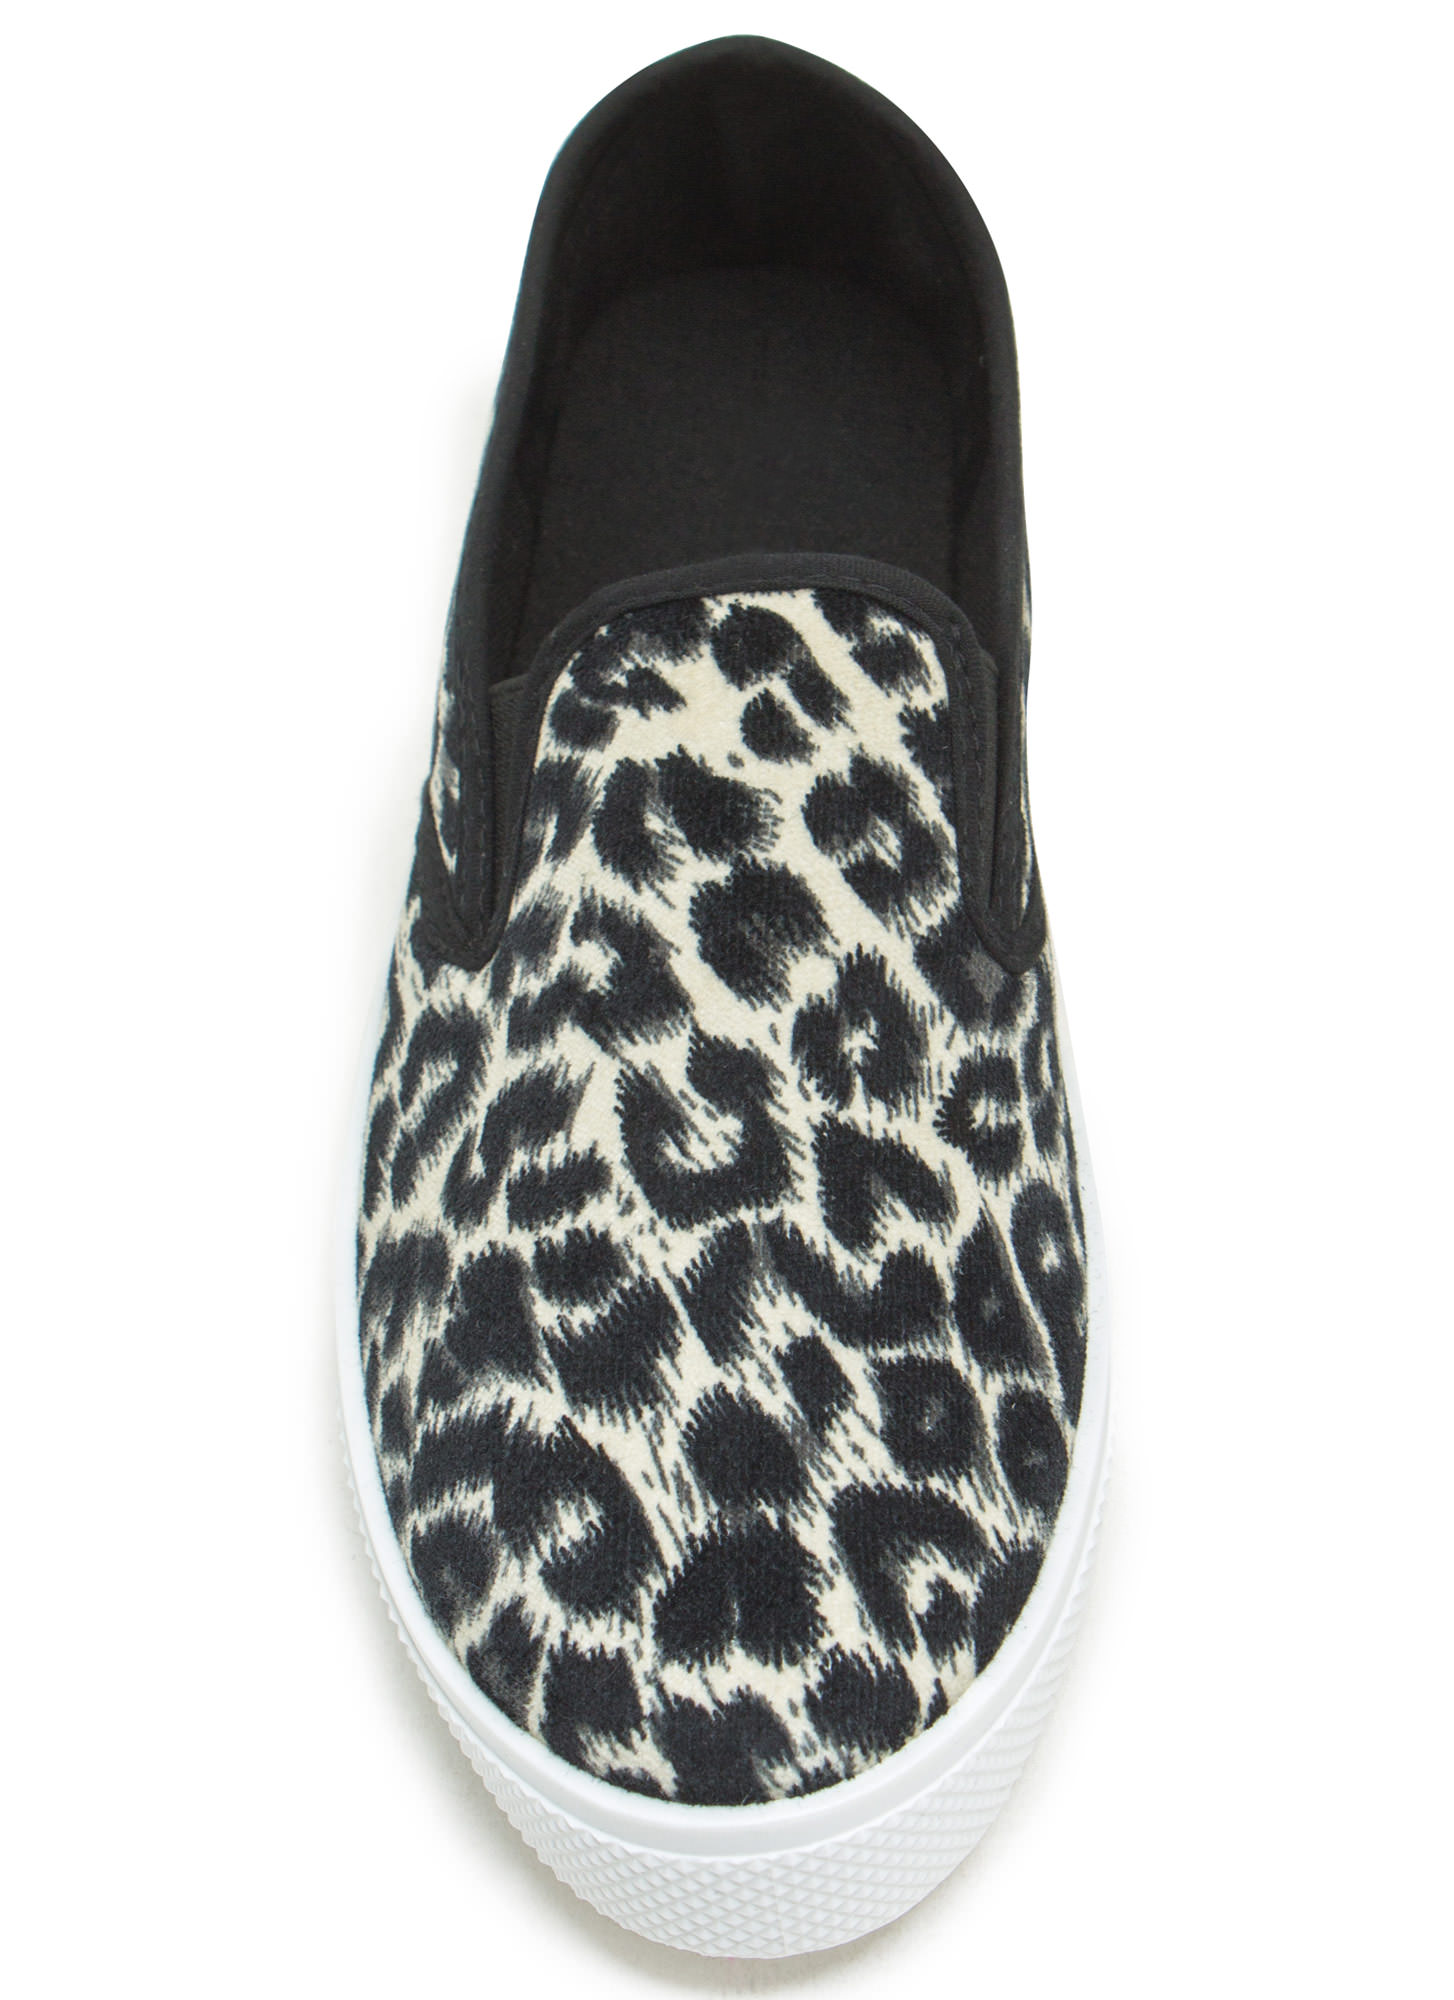 Skate Park Print-cess Slip-On Sneakers BLACKLEO